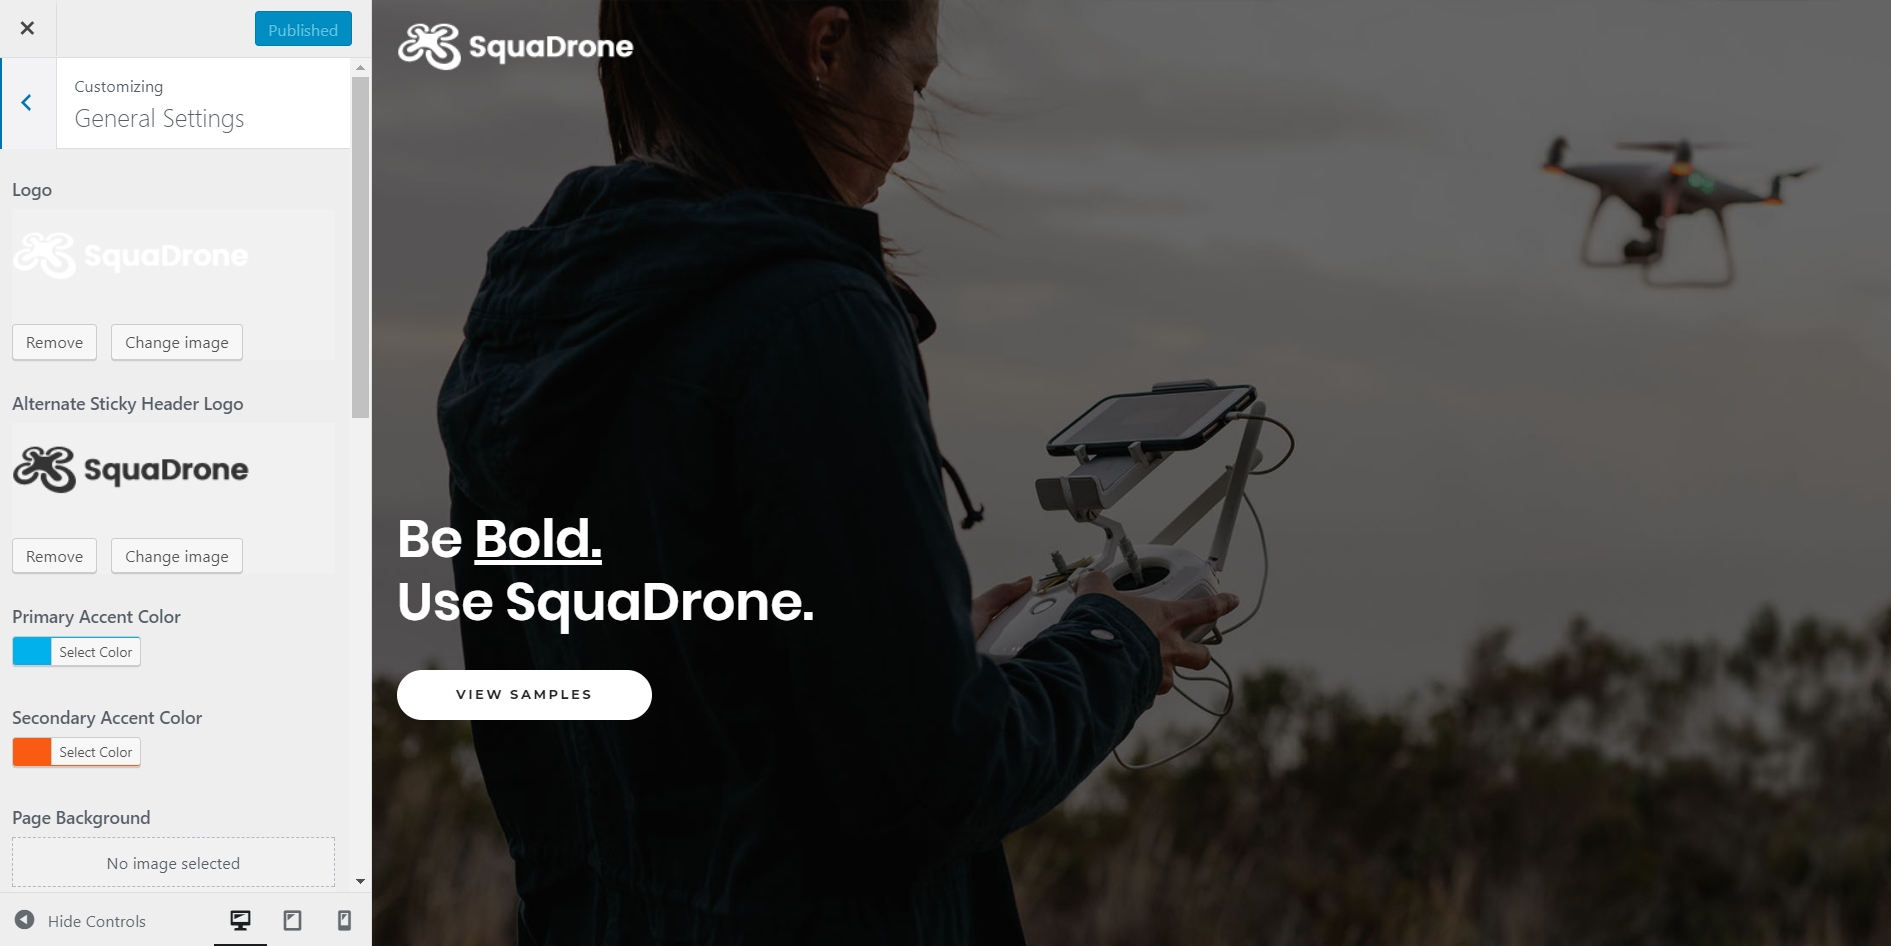 https://documentation.bold-themes.com/squadrone/wp-content/uploads/sites/29/2018/02/general-settings.png